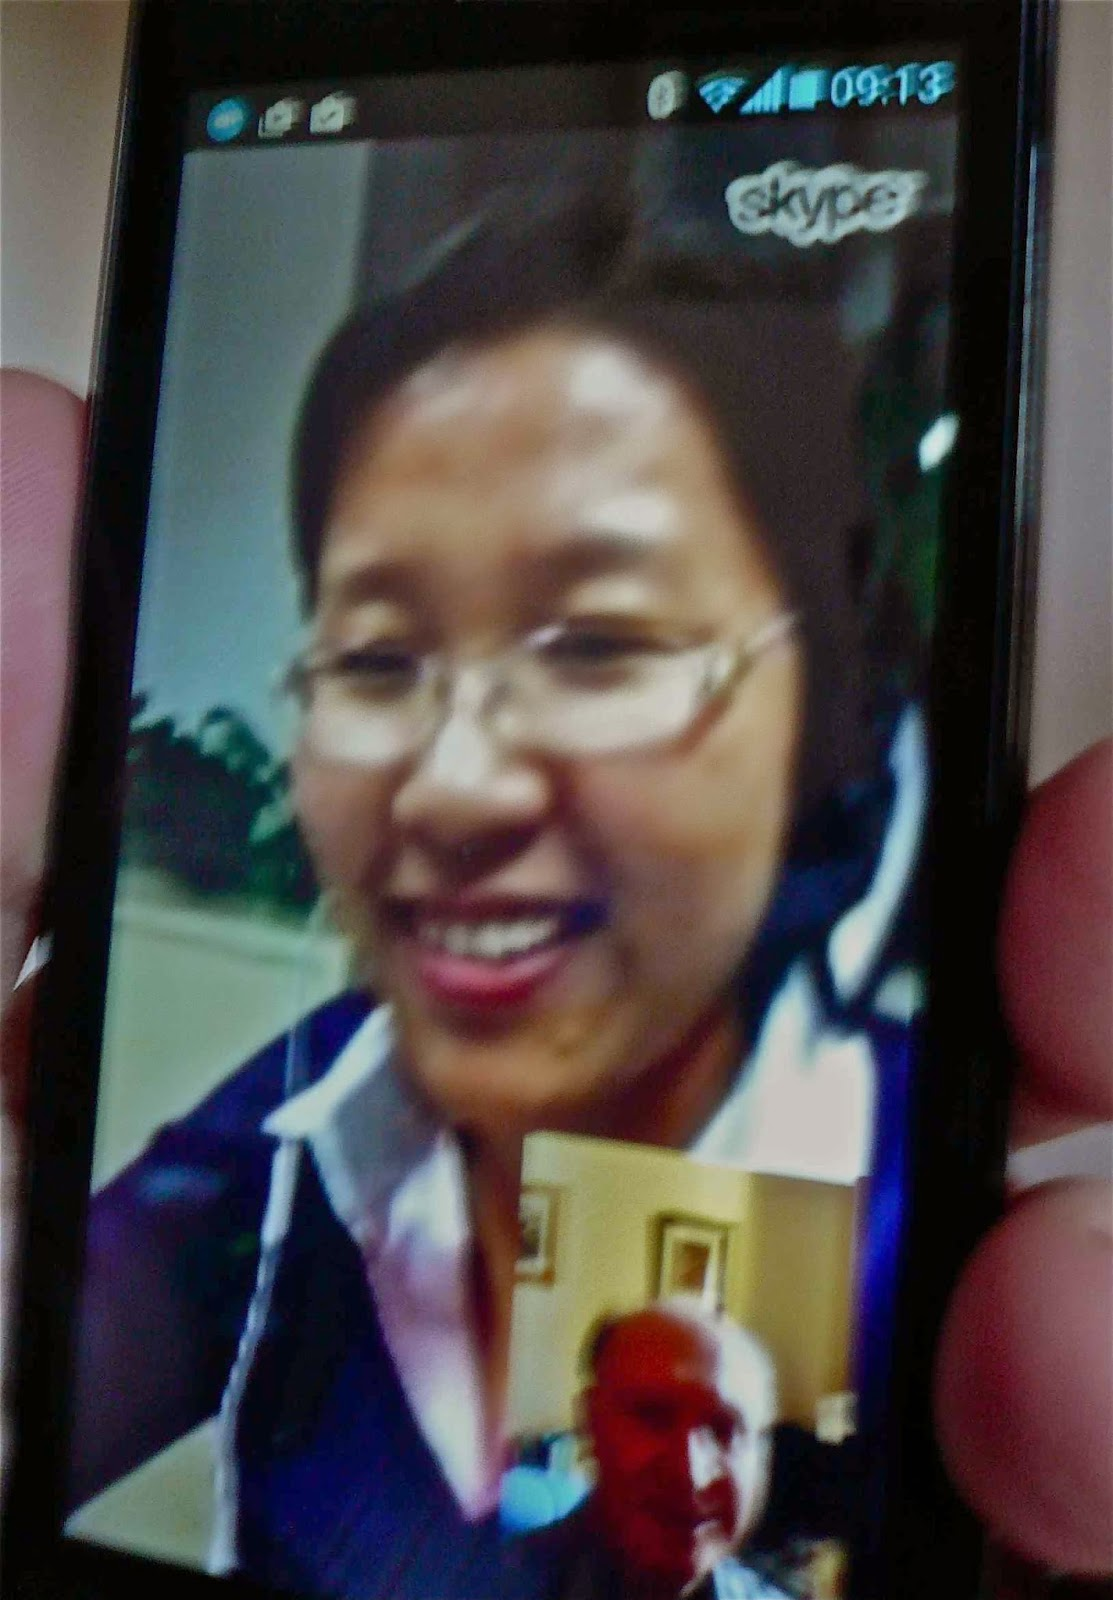 Picture of Video call to China on smartphone [[slnc 1000]]